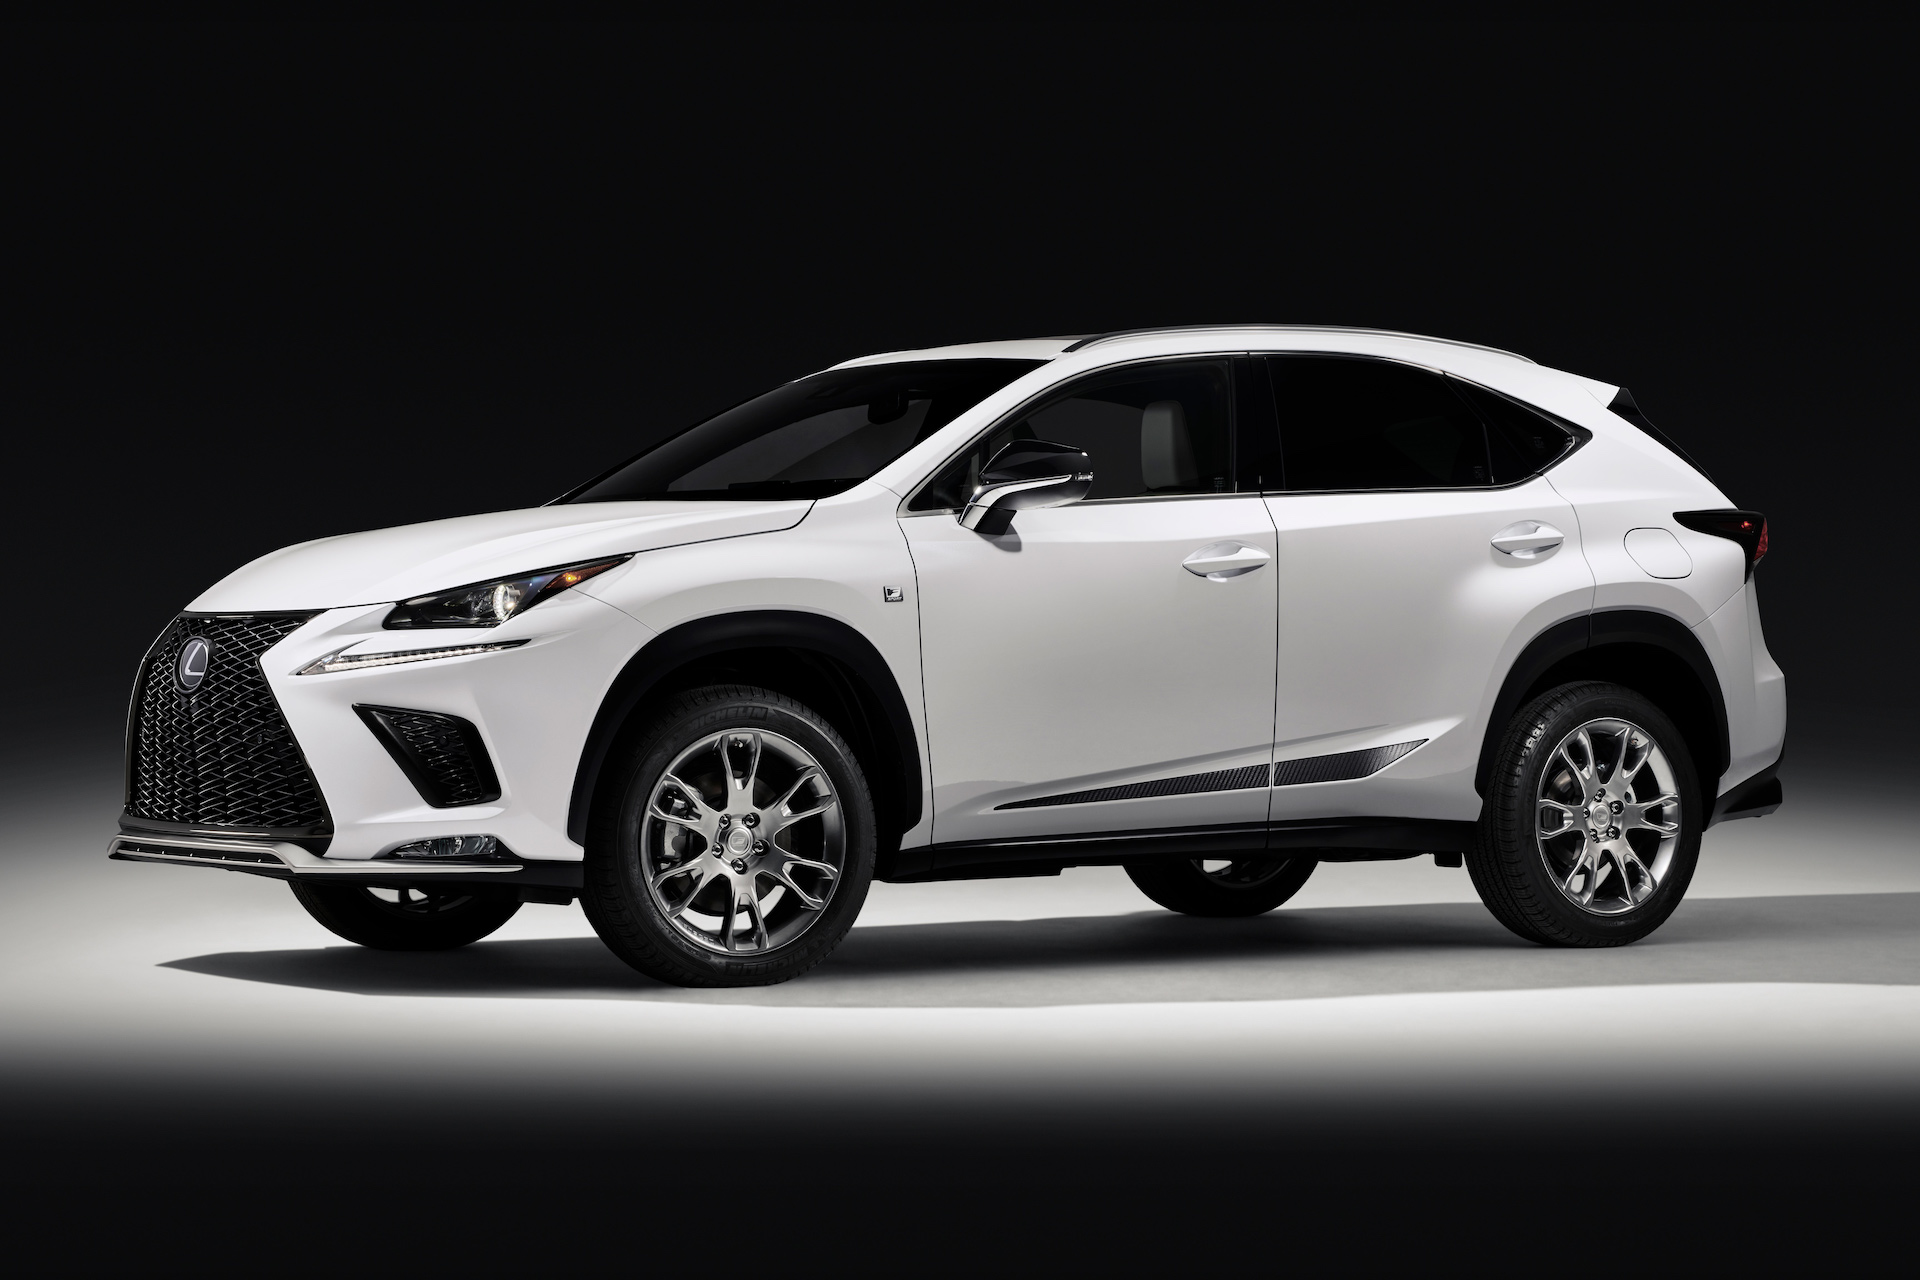 2019 Lexus NX F Sport Black Line Special Edition Is